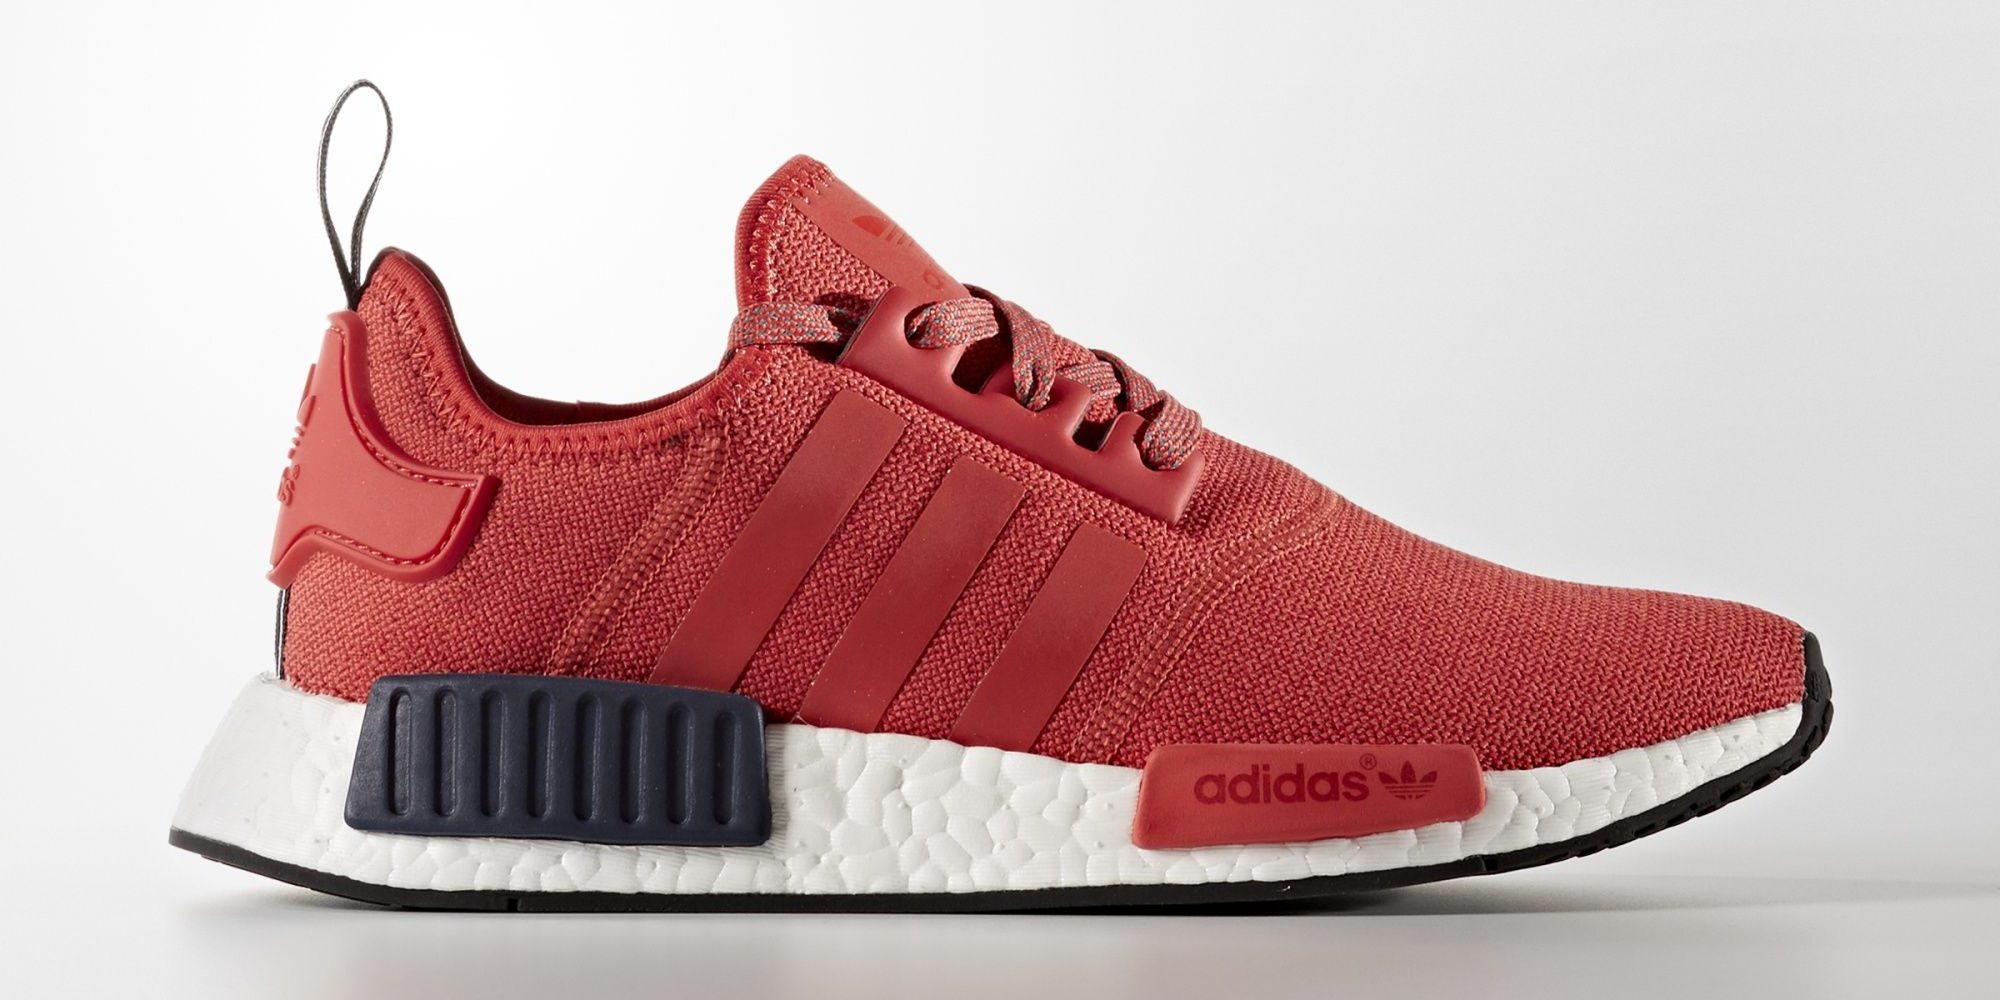 adidas shoes nmd r1 pink 2018 album of the year grammy category